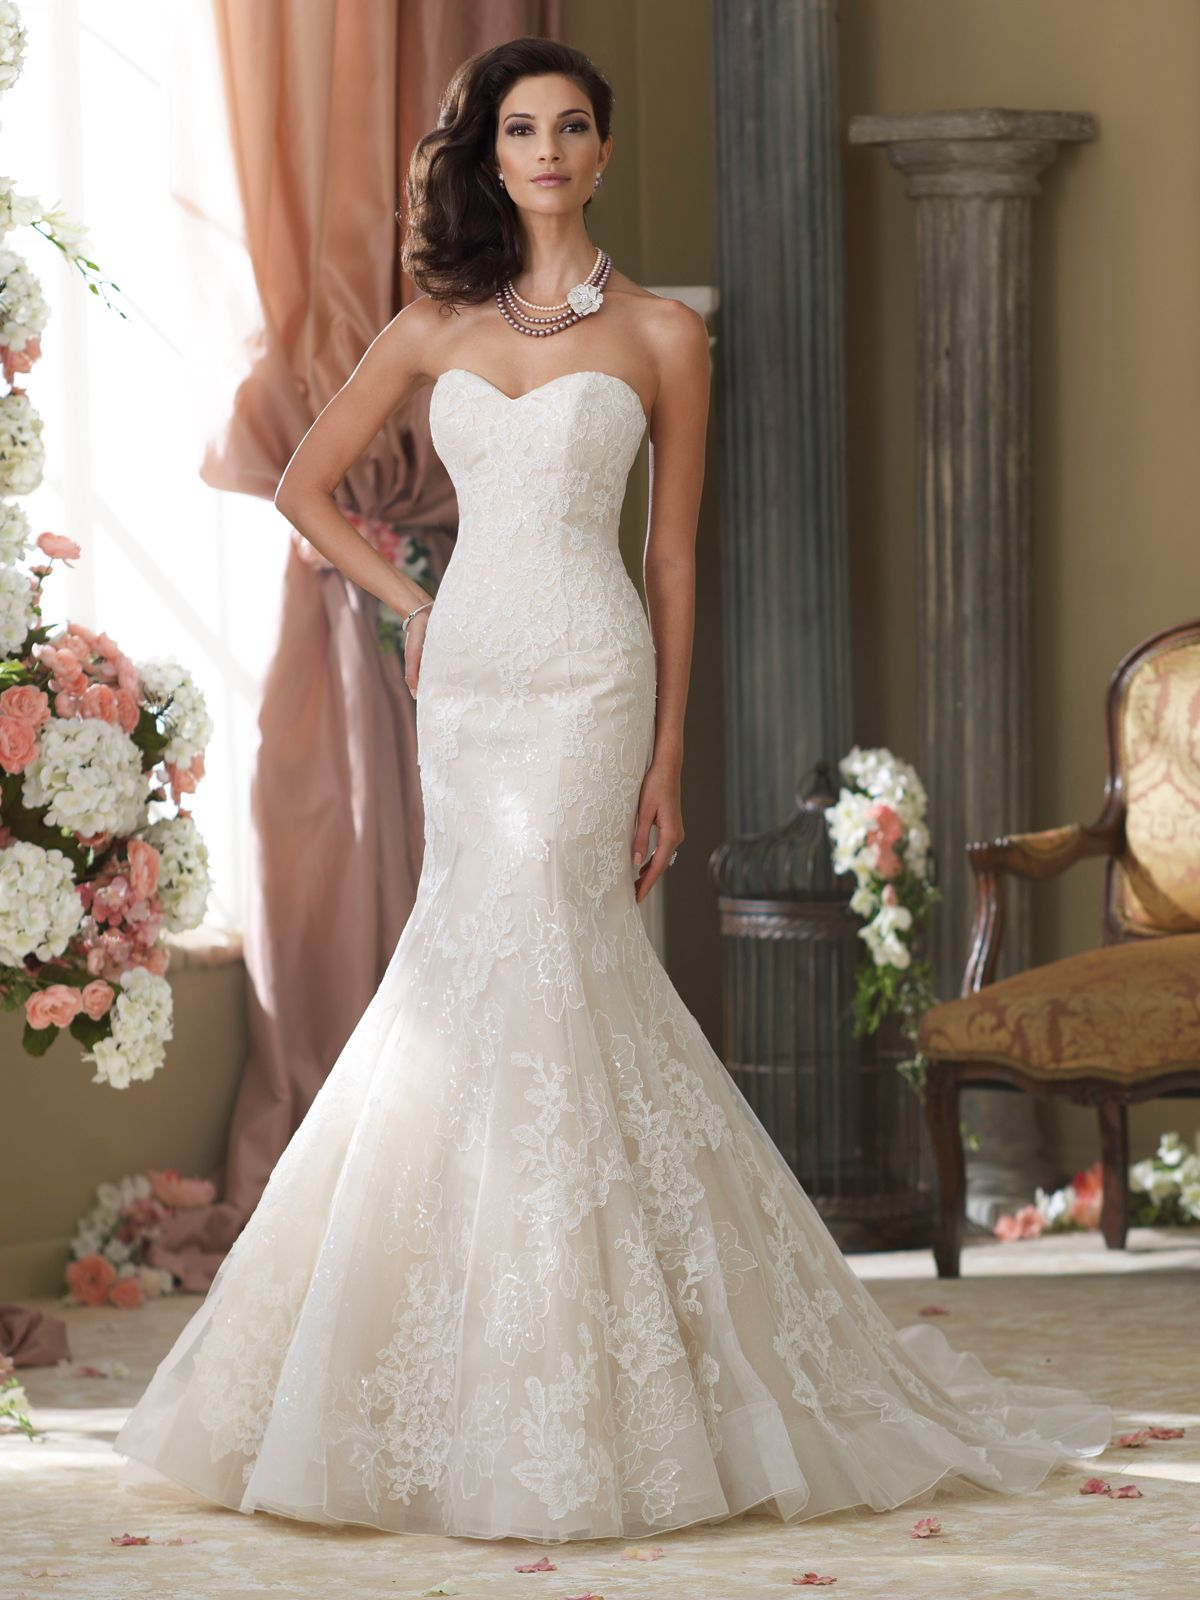 strapless mermaid wedding dresses Wedding Dresses Collection Strapless lace tulle organza and sequin over satin mermaid